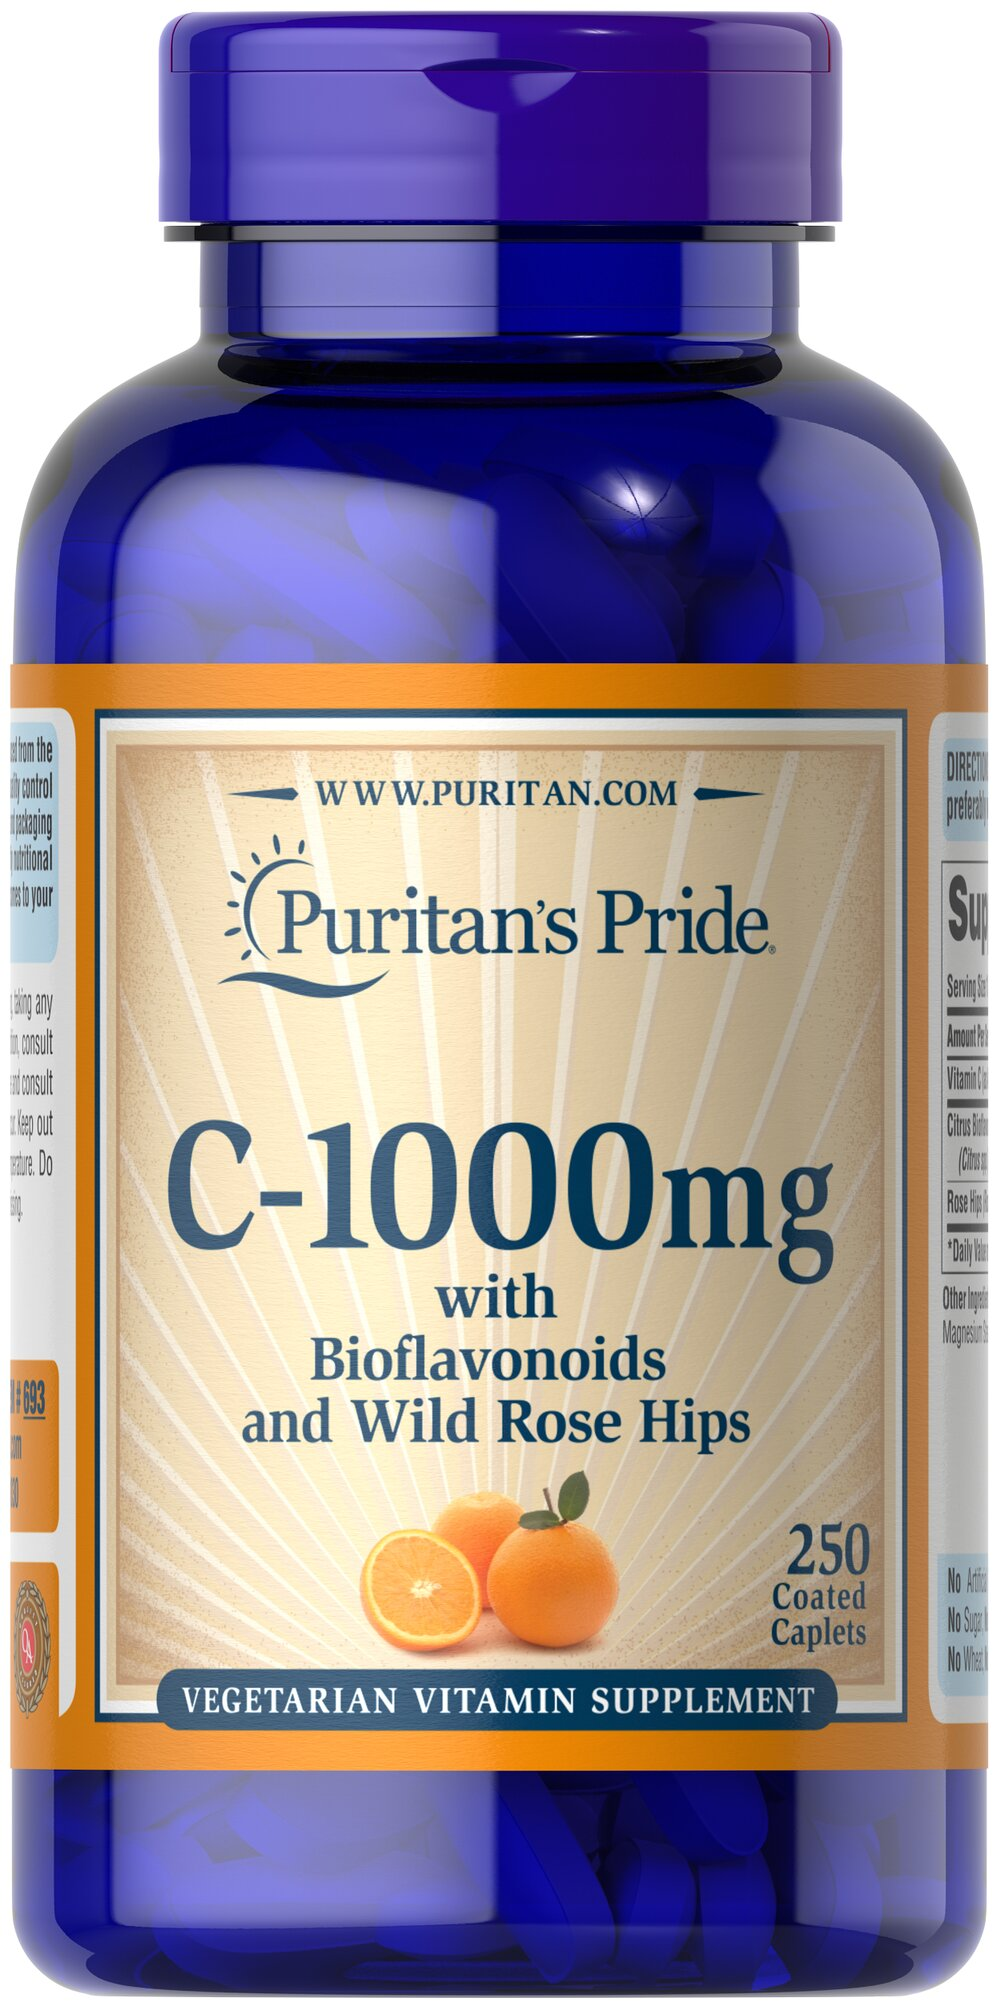 Vitamin C-1000 mg with Bioflavonoids & Rose Hips <p>Vitamin C  is essential to many functions in the body and is one of the leading vitamins for immune support and helps fight cell-damaging free radicals.**  Our product also includes Rose Hips, which help the body absorb and utilize Vitamin C.**</p><p>Offers superior antioxidant support.**</p><p>Supports healthy immune function and promotes well-being.**</p> 250 Caplets 1000 mg $18.39